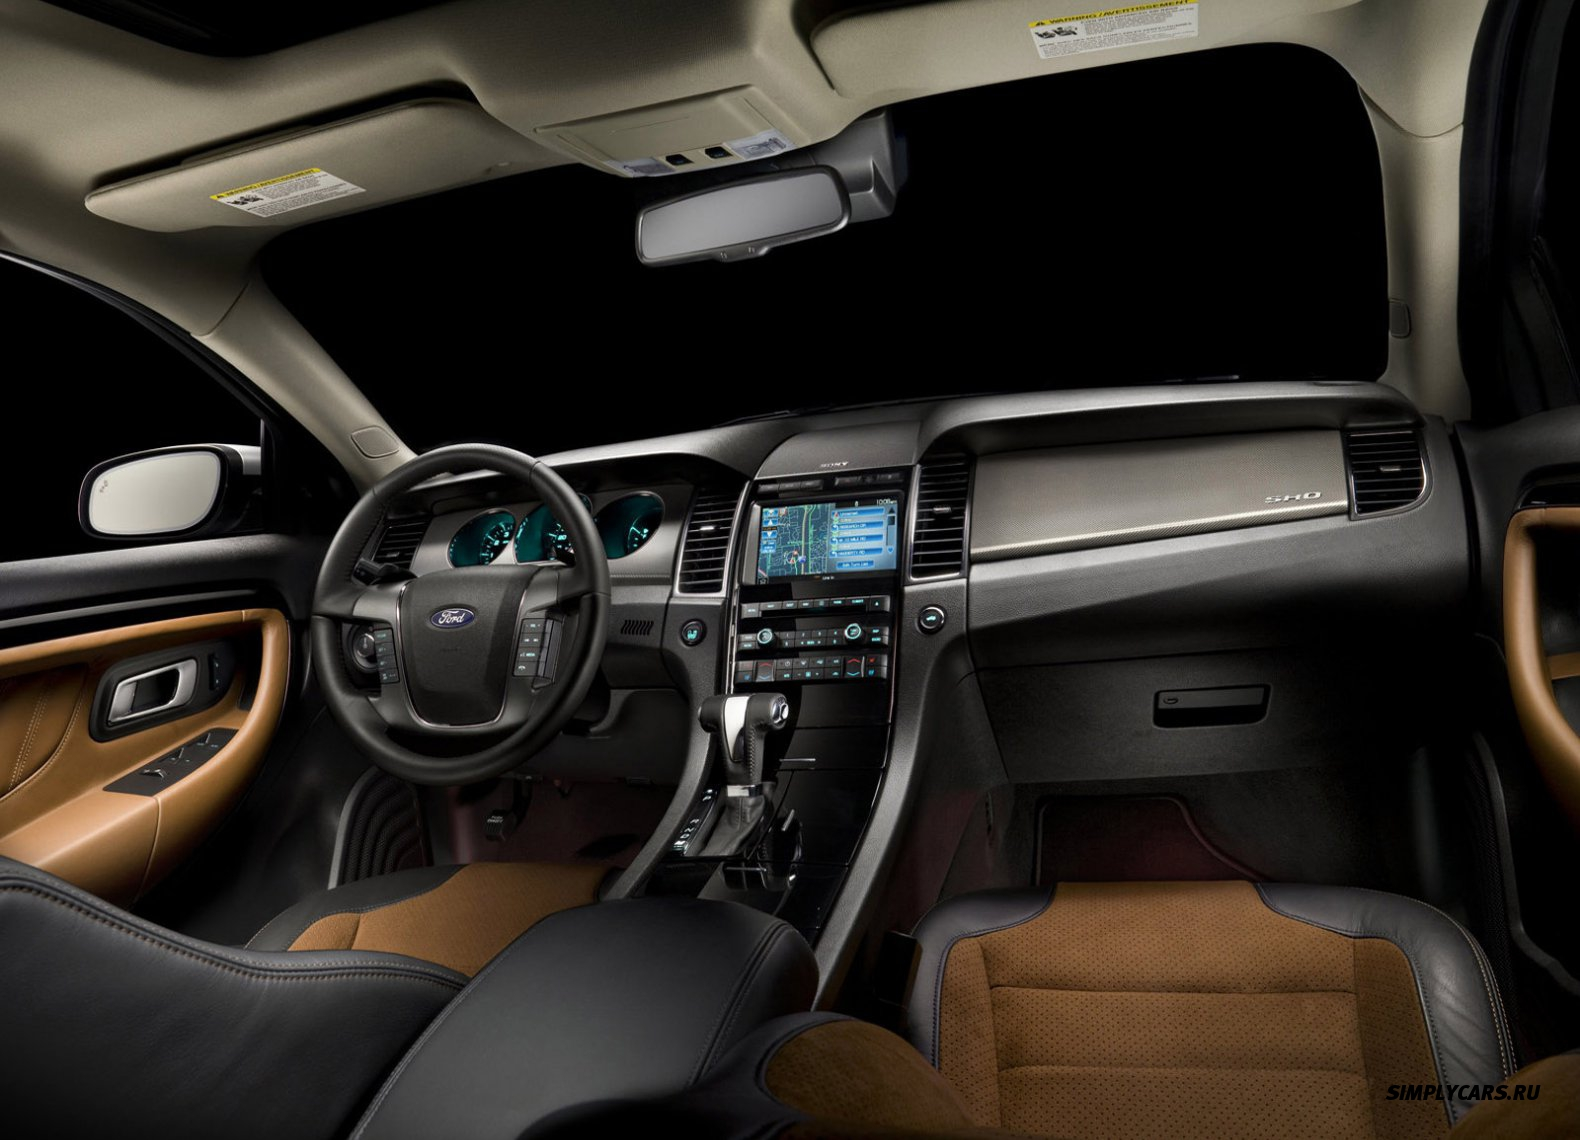 Ford taurus interior photos